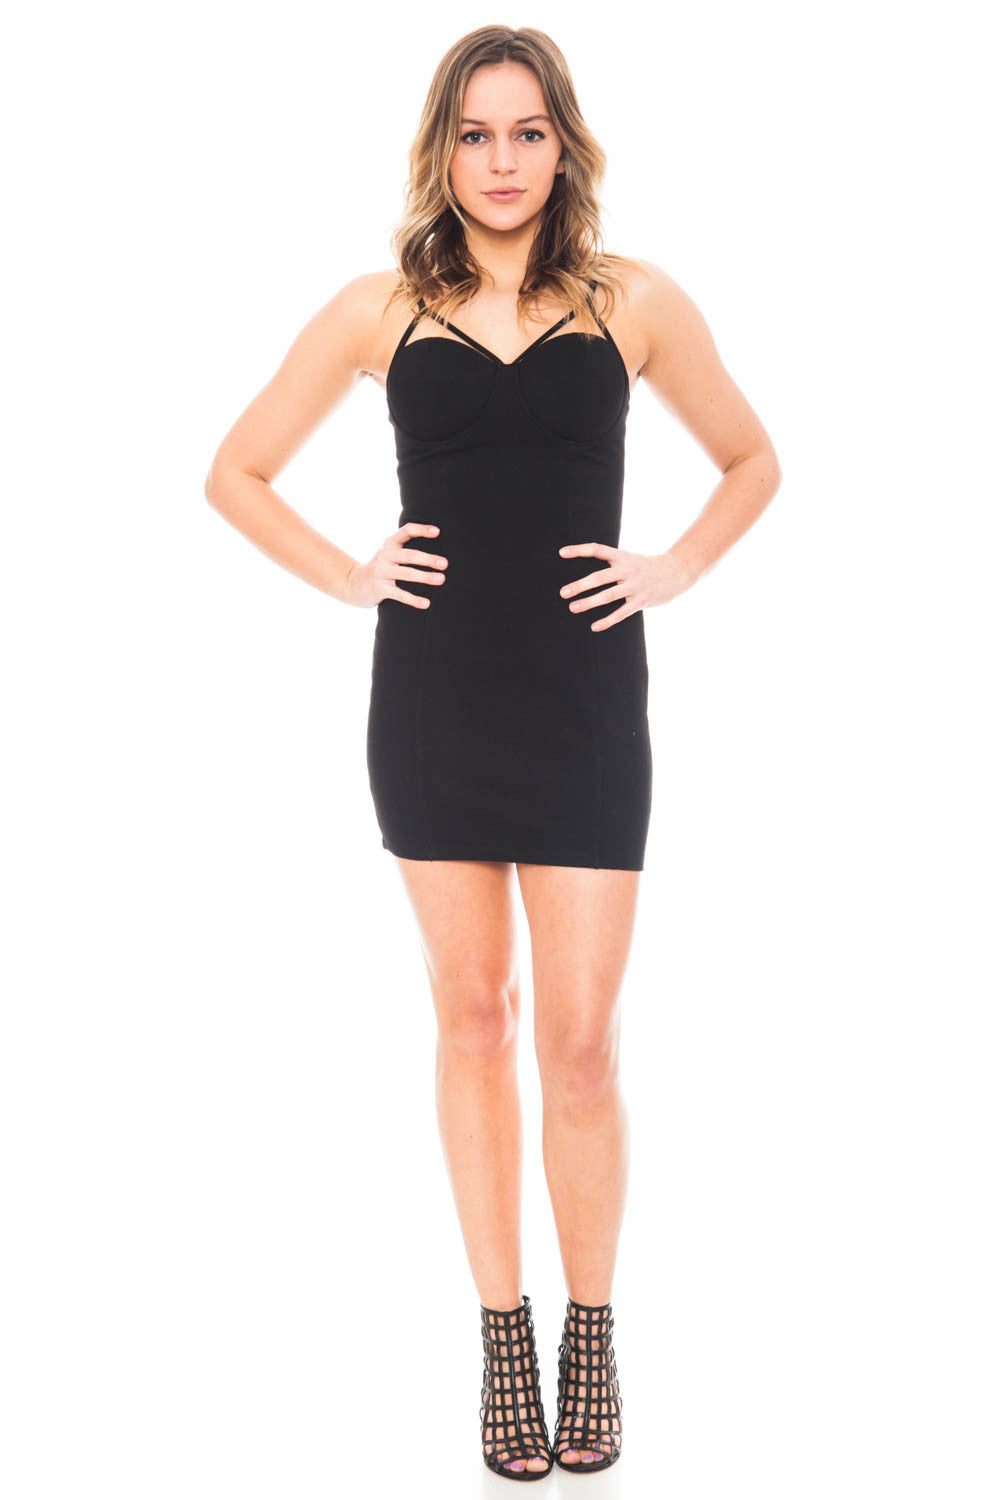 Dress - Sleeveless Bodycon Dress by Lush